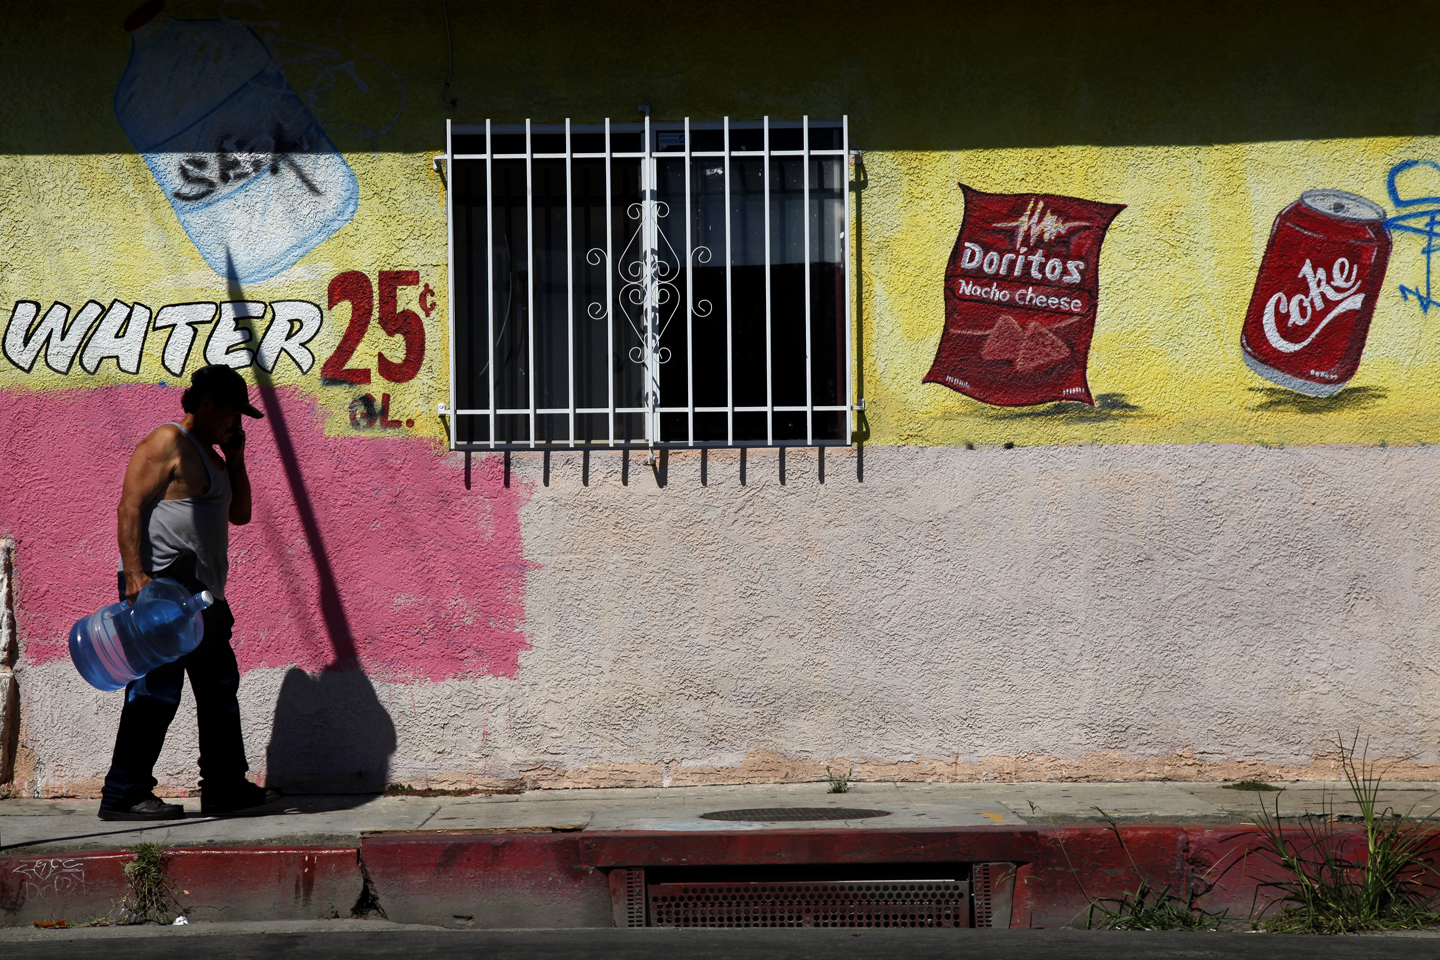 A man walks by the outside of the El Rinconcito Water Mart with a fresh jug of water. The business, with hand painted icons adorning the outside walls, has expanded to sell other items as well such as snacks and sodas.